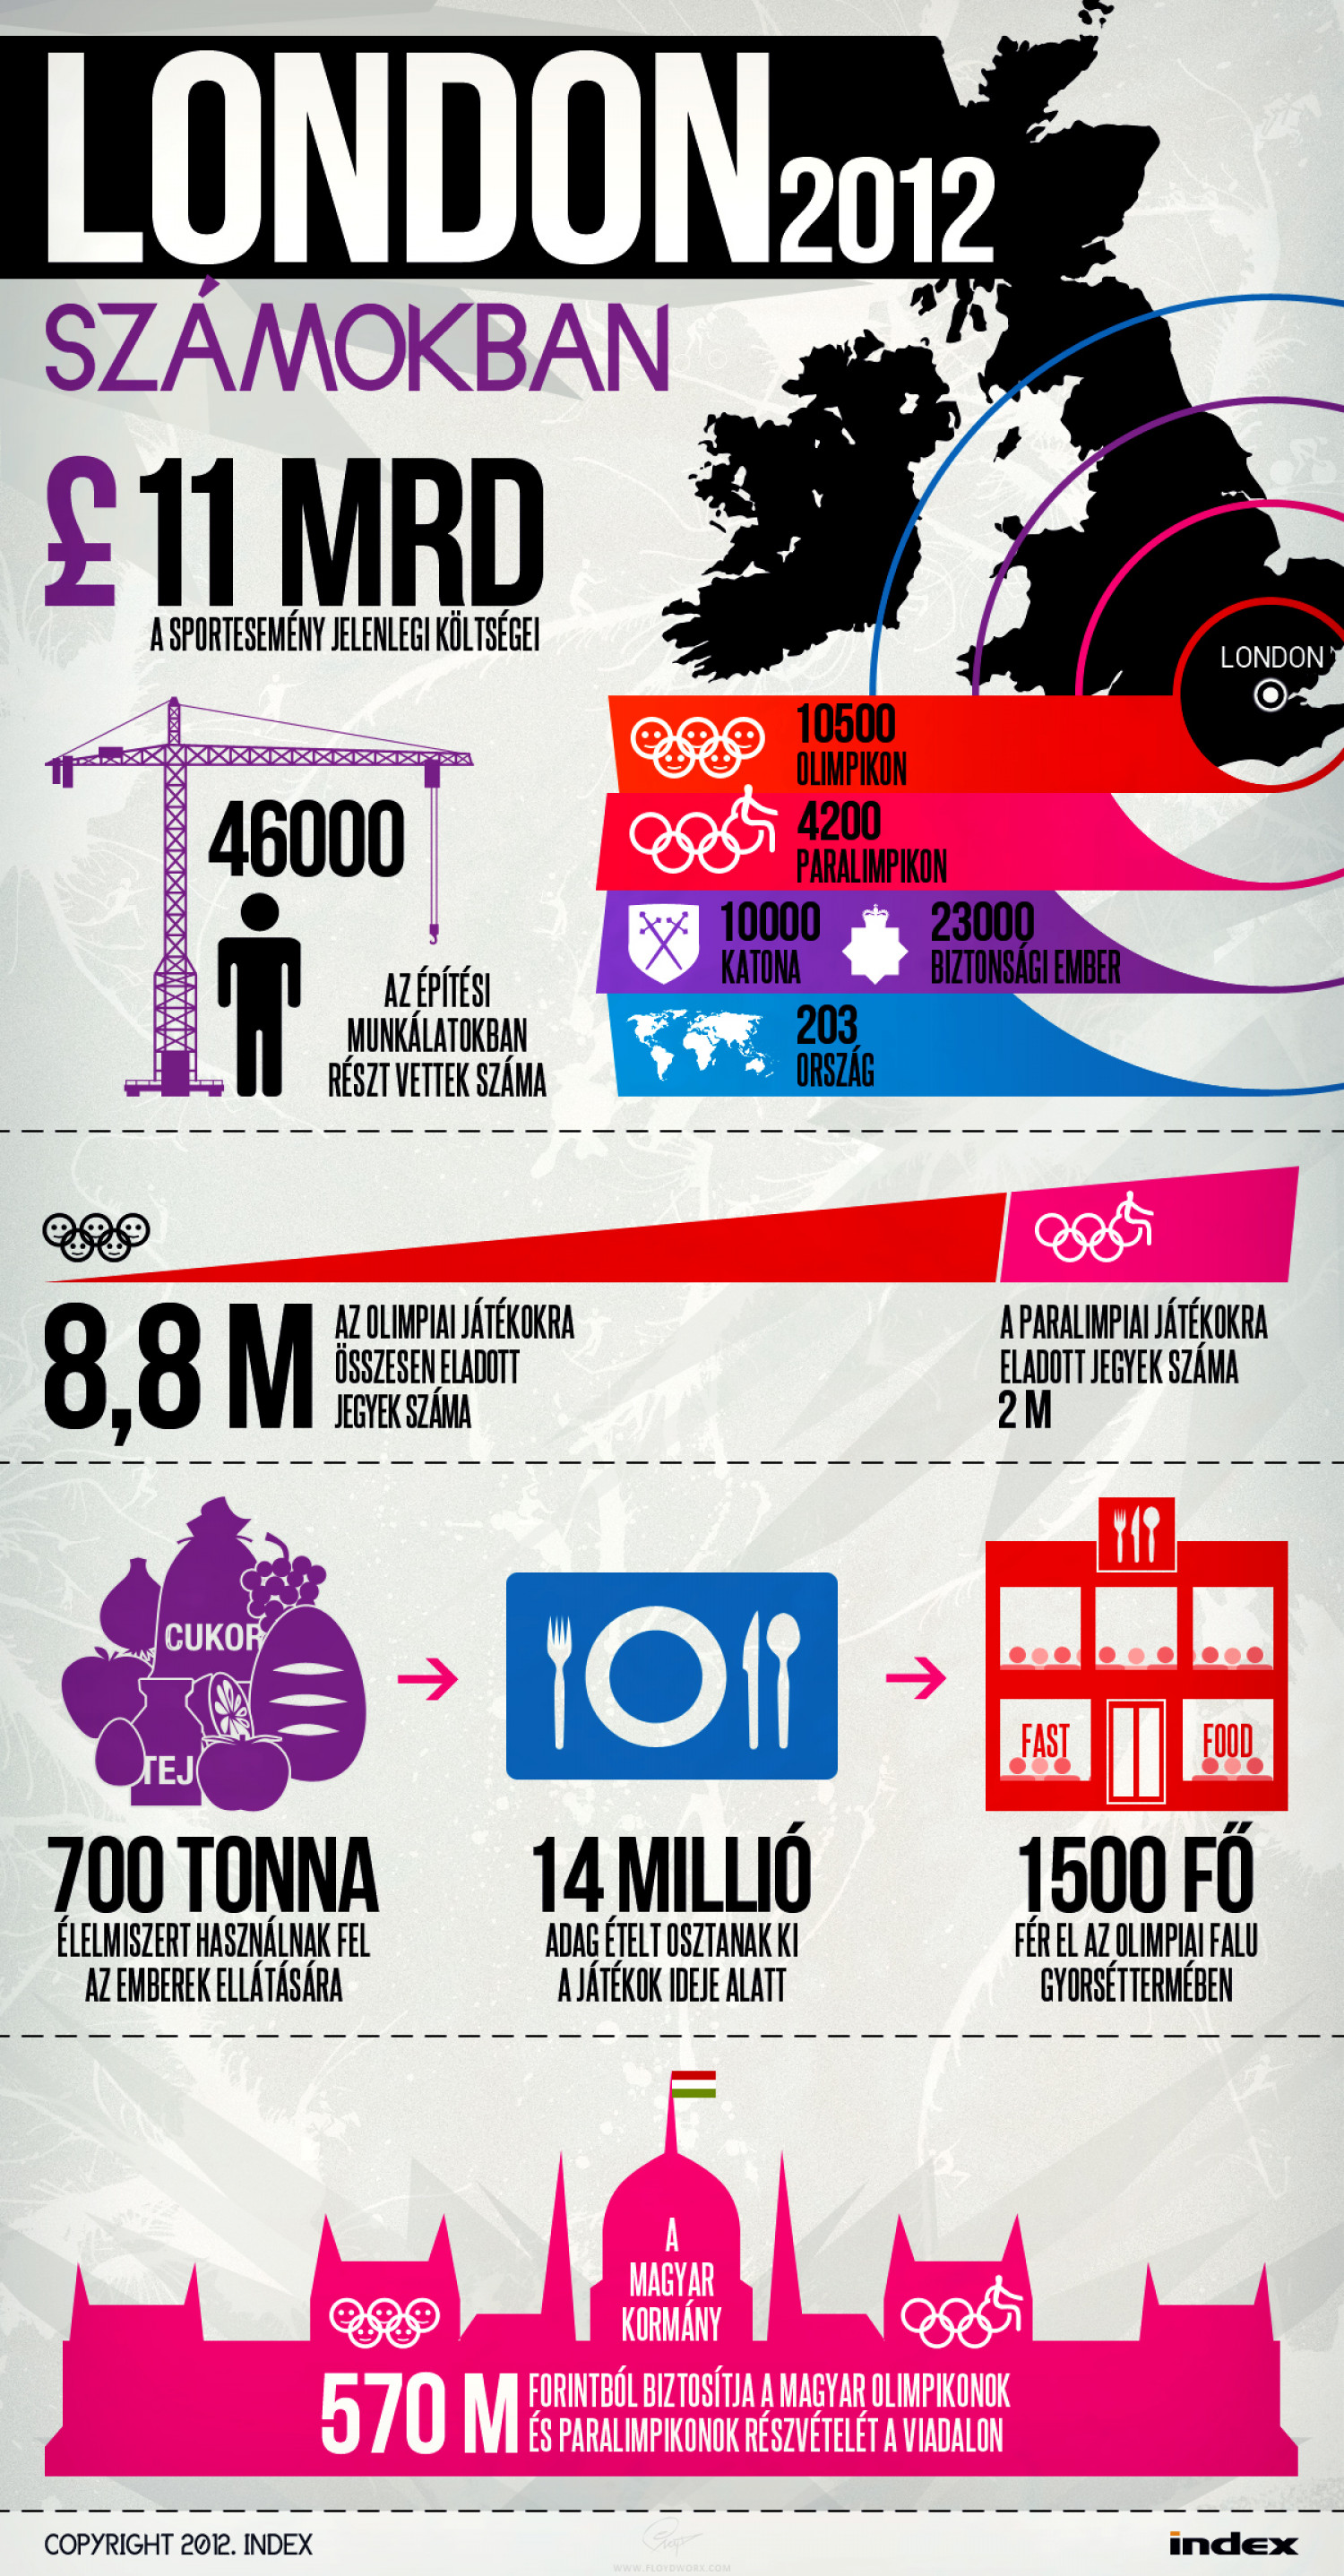 London 2012 Olympic Games Infographic